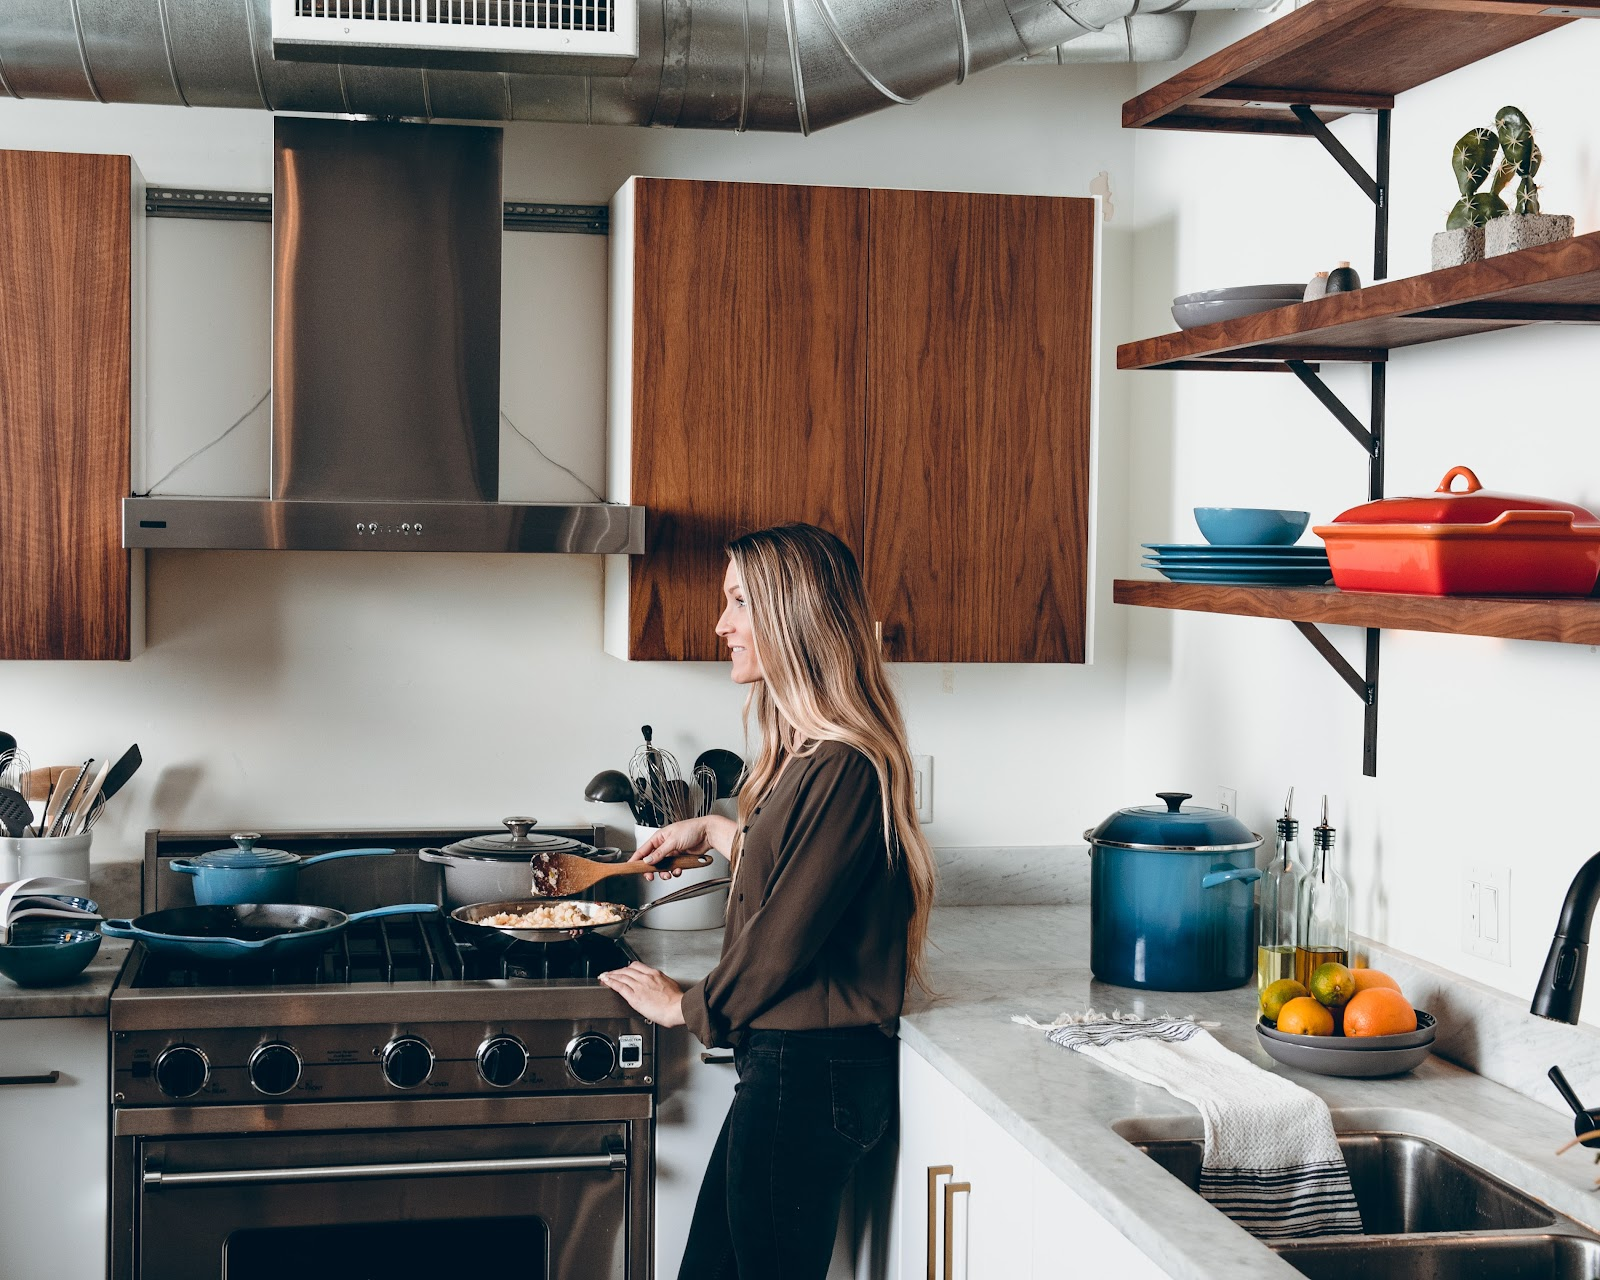 7 Easy Steps to Remodel Your Small Kitchen